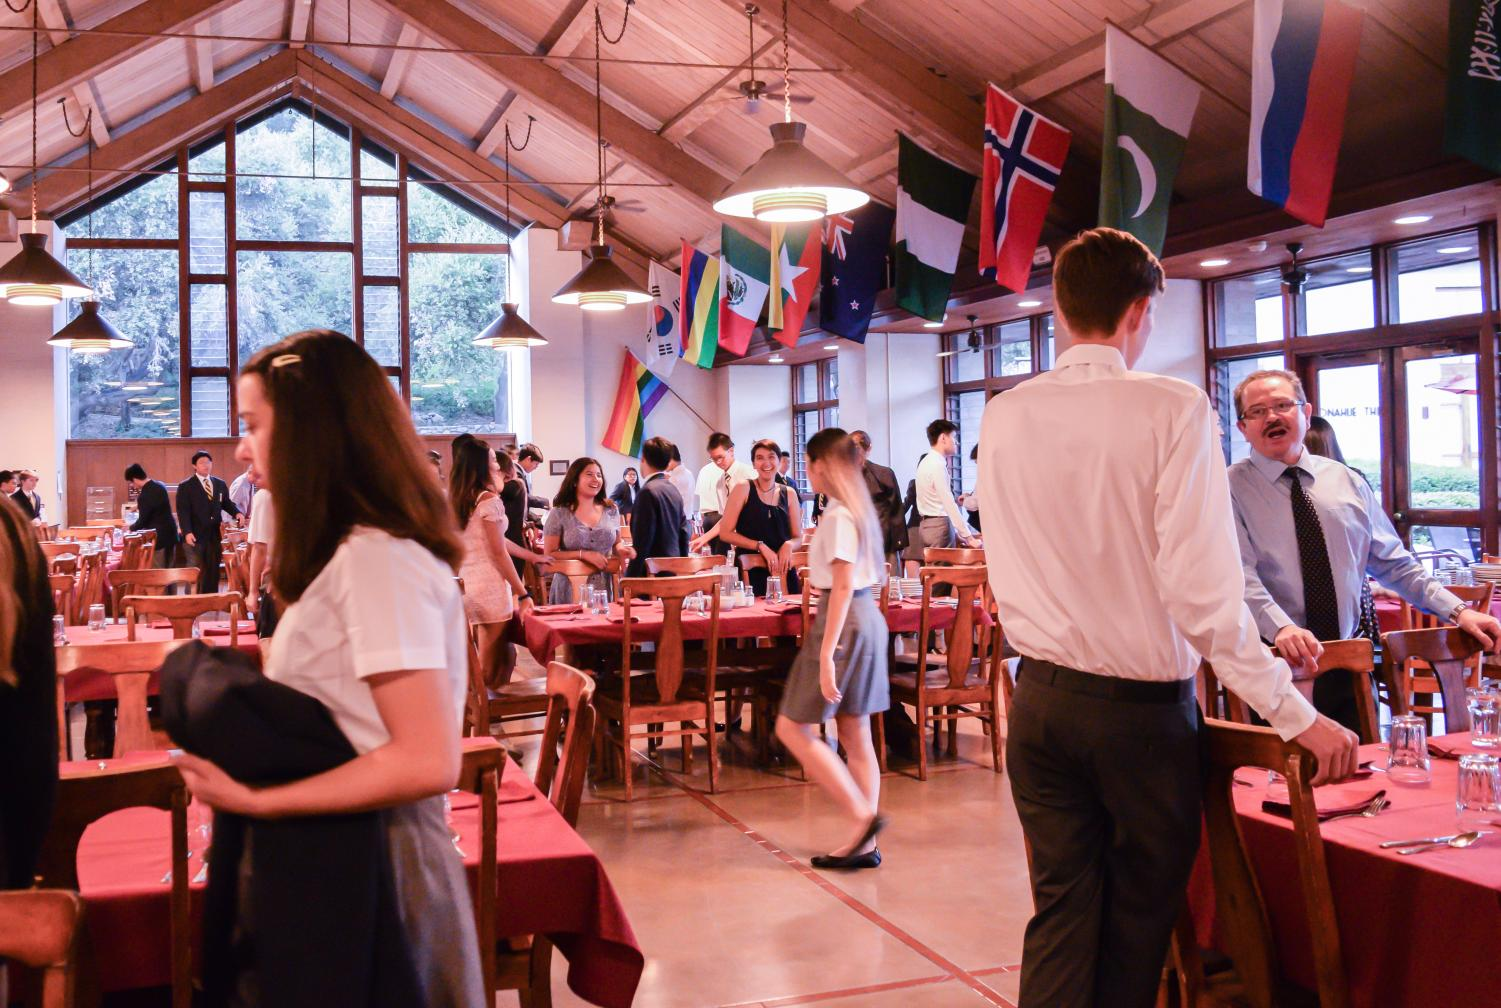 After Sunday chapel service, Webb students bustle into the dining hall and toward their community dinner tables.